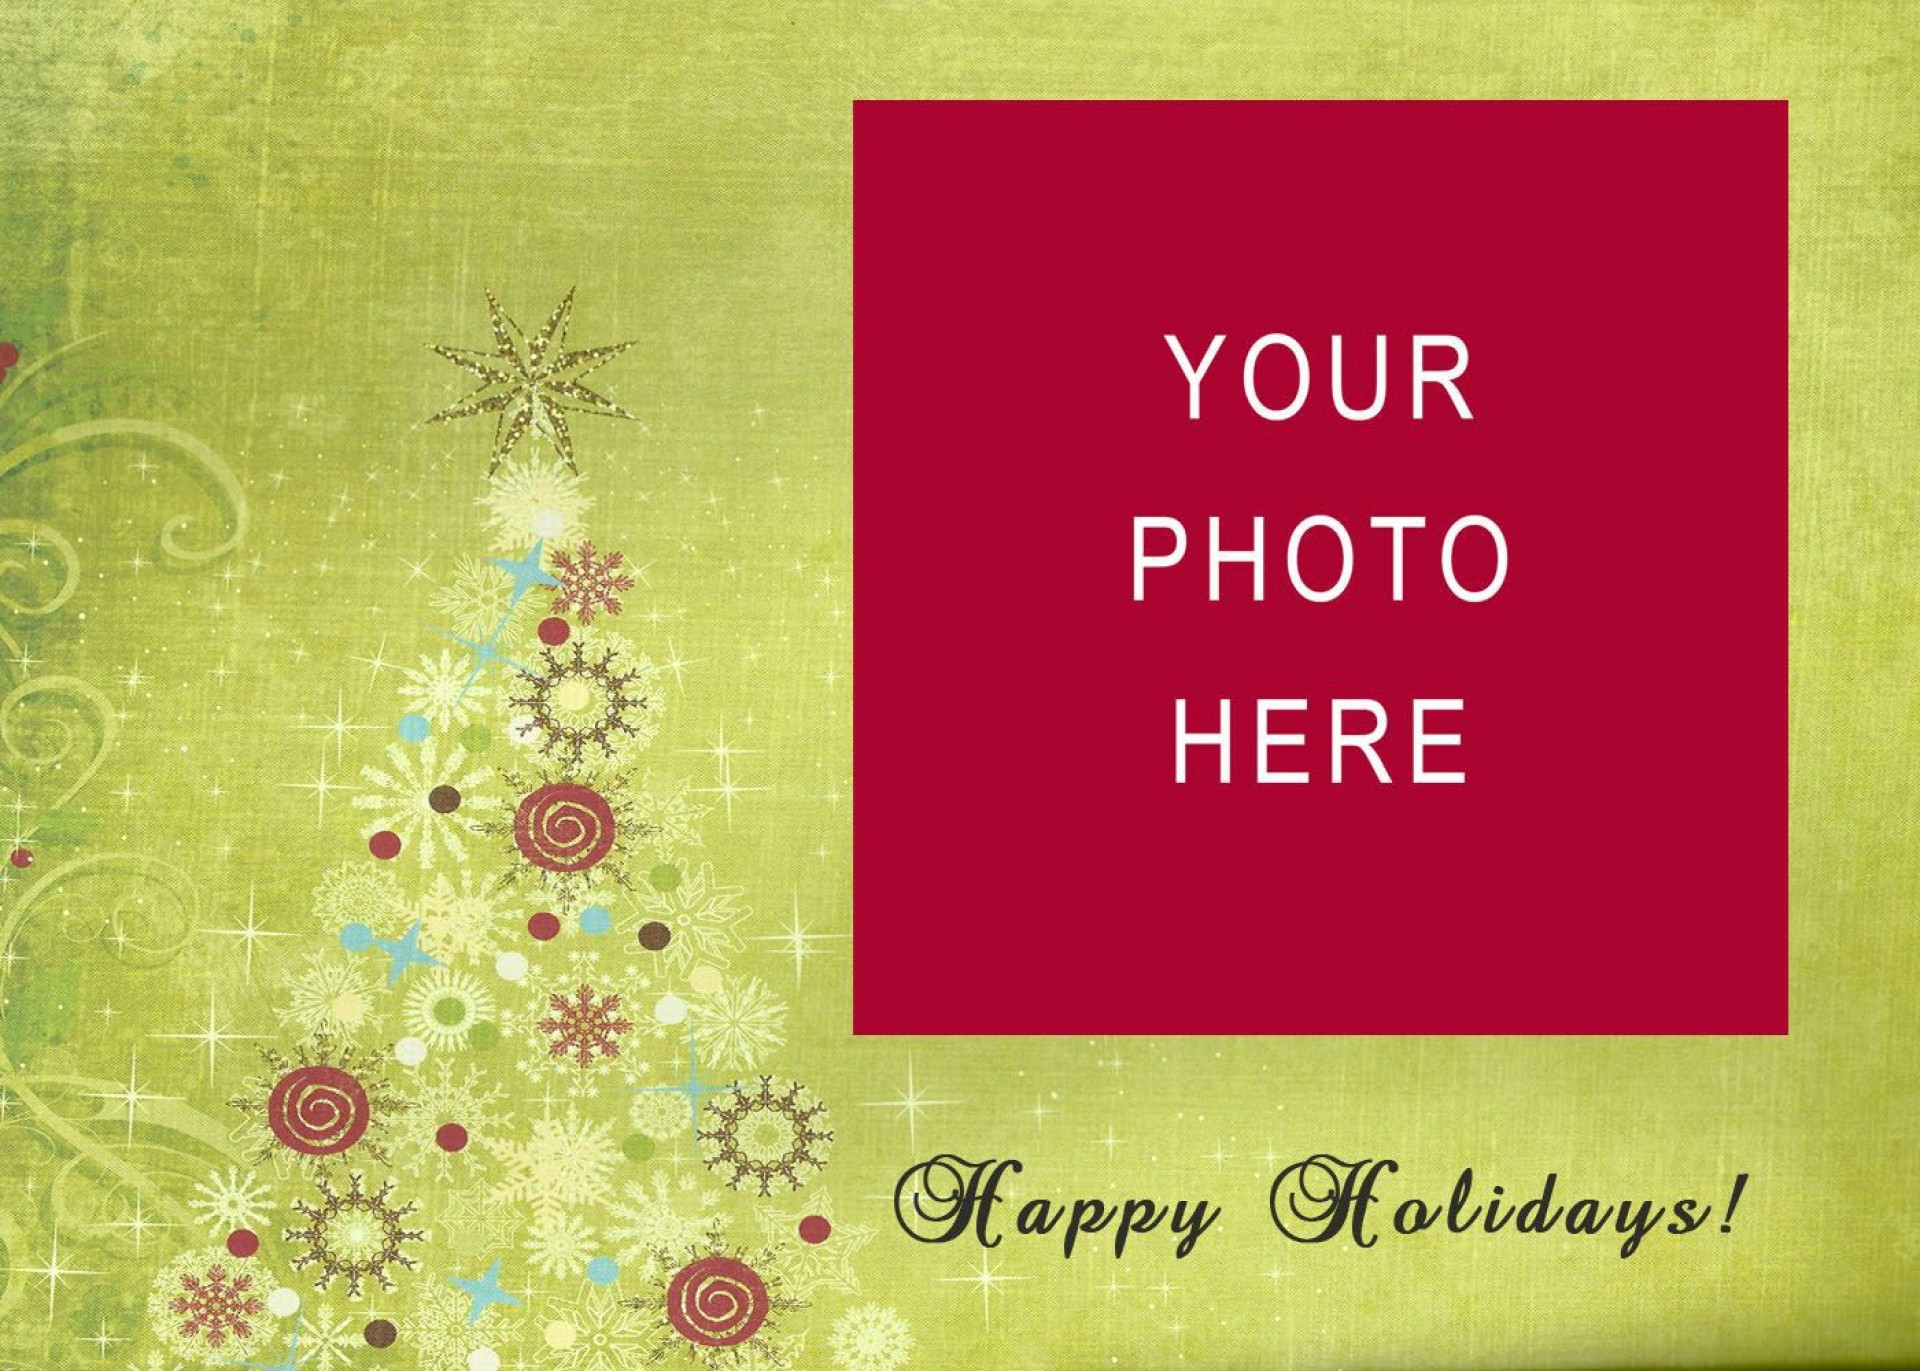 005 Amazing Free Download Holiday Card Template Photo 1920